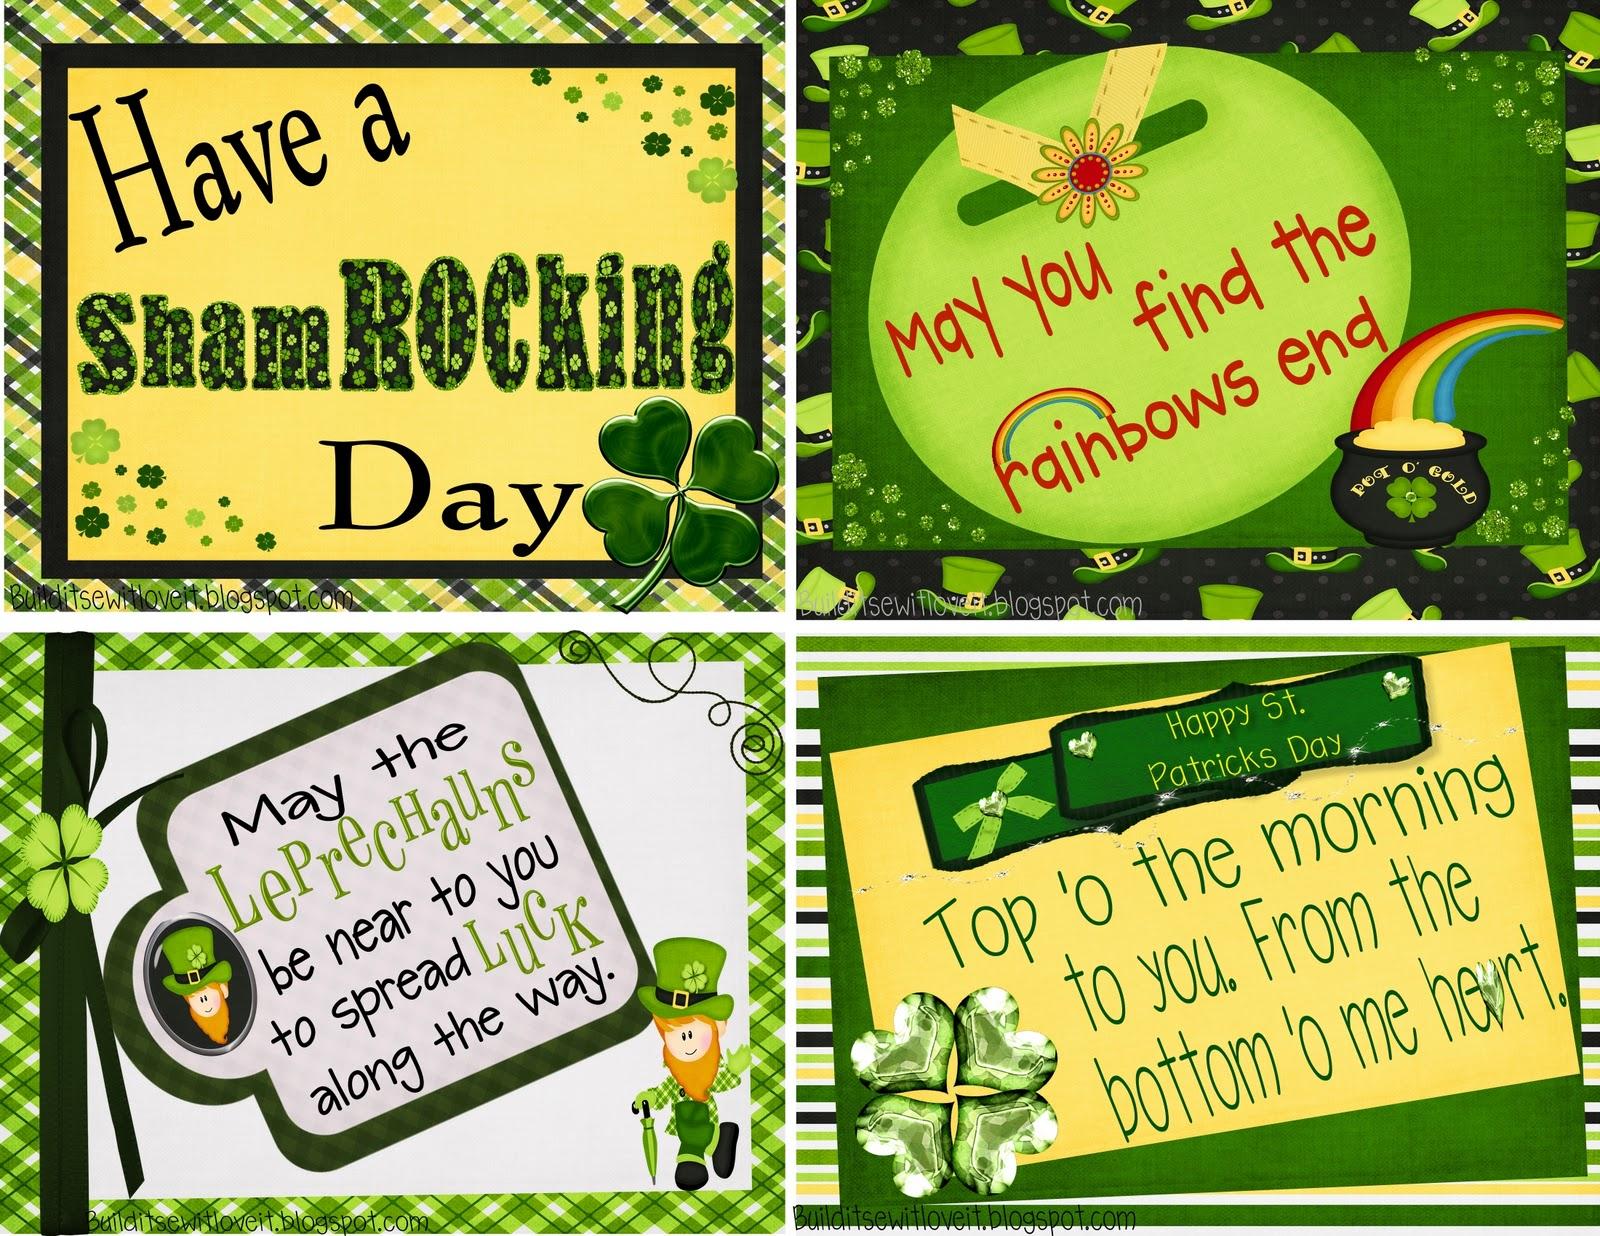 Saint patrick 39 s day quotes quotesgram for Funny irish sayings for st patrick day